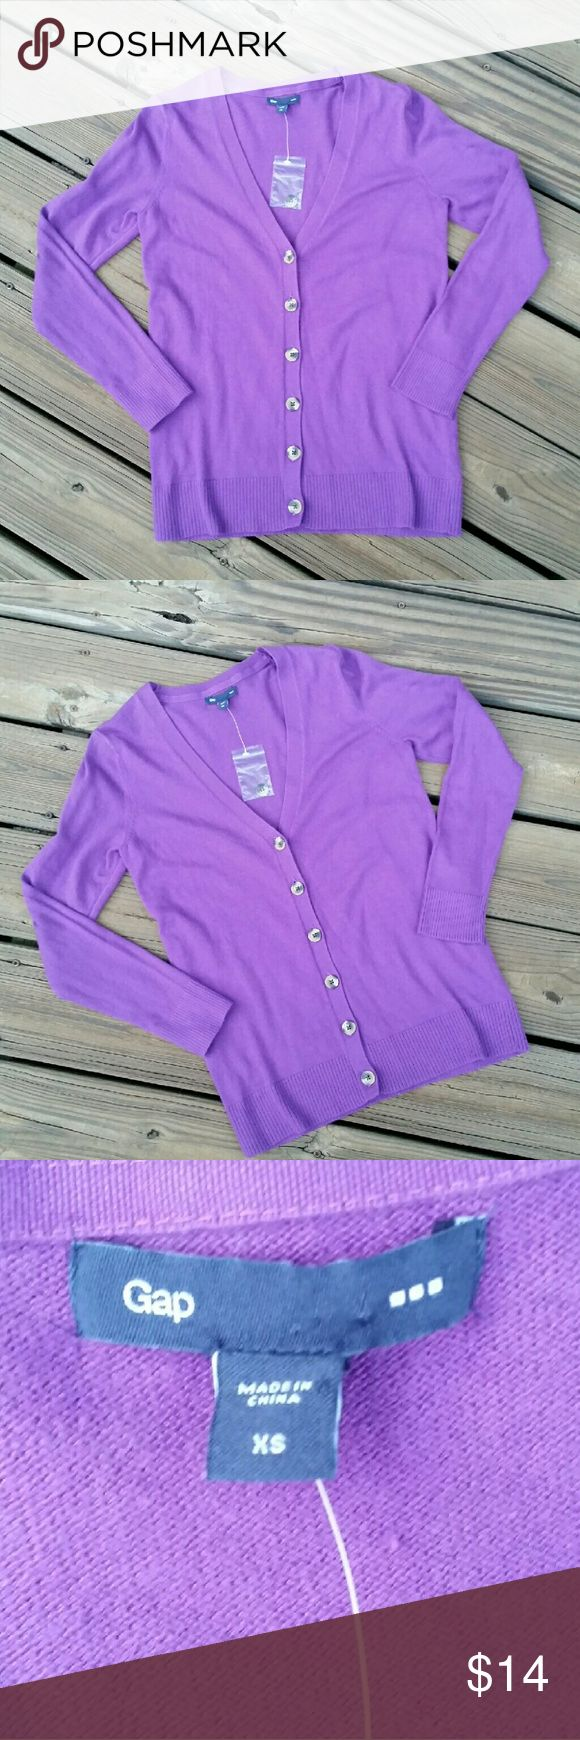 GAP Outlet Purple Cardigan Perfect fall piece! This is a gorgeous pop of purple, GAP Outlet, button down cardigan. Brand New! Button tag still attached, price tag is not. GAP Sweaters Cardigans